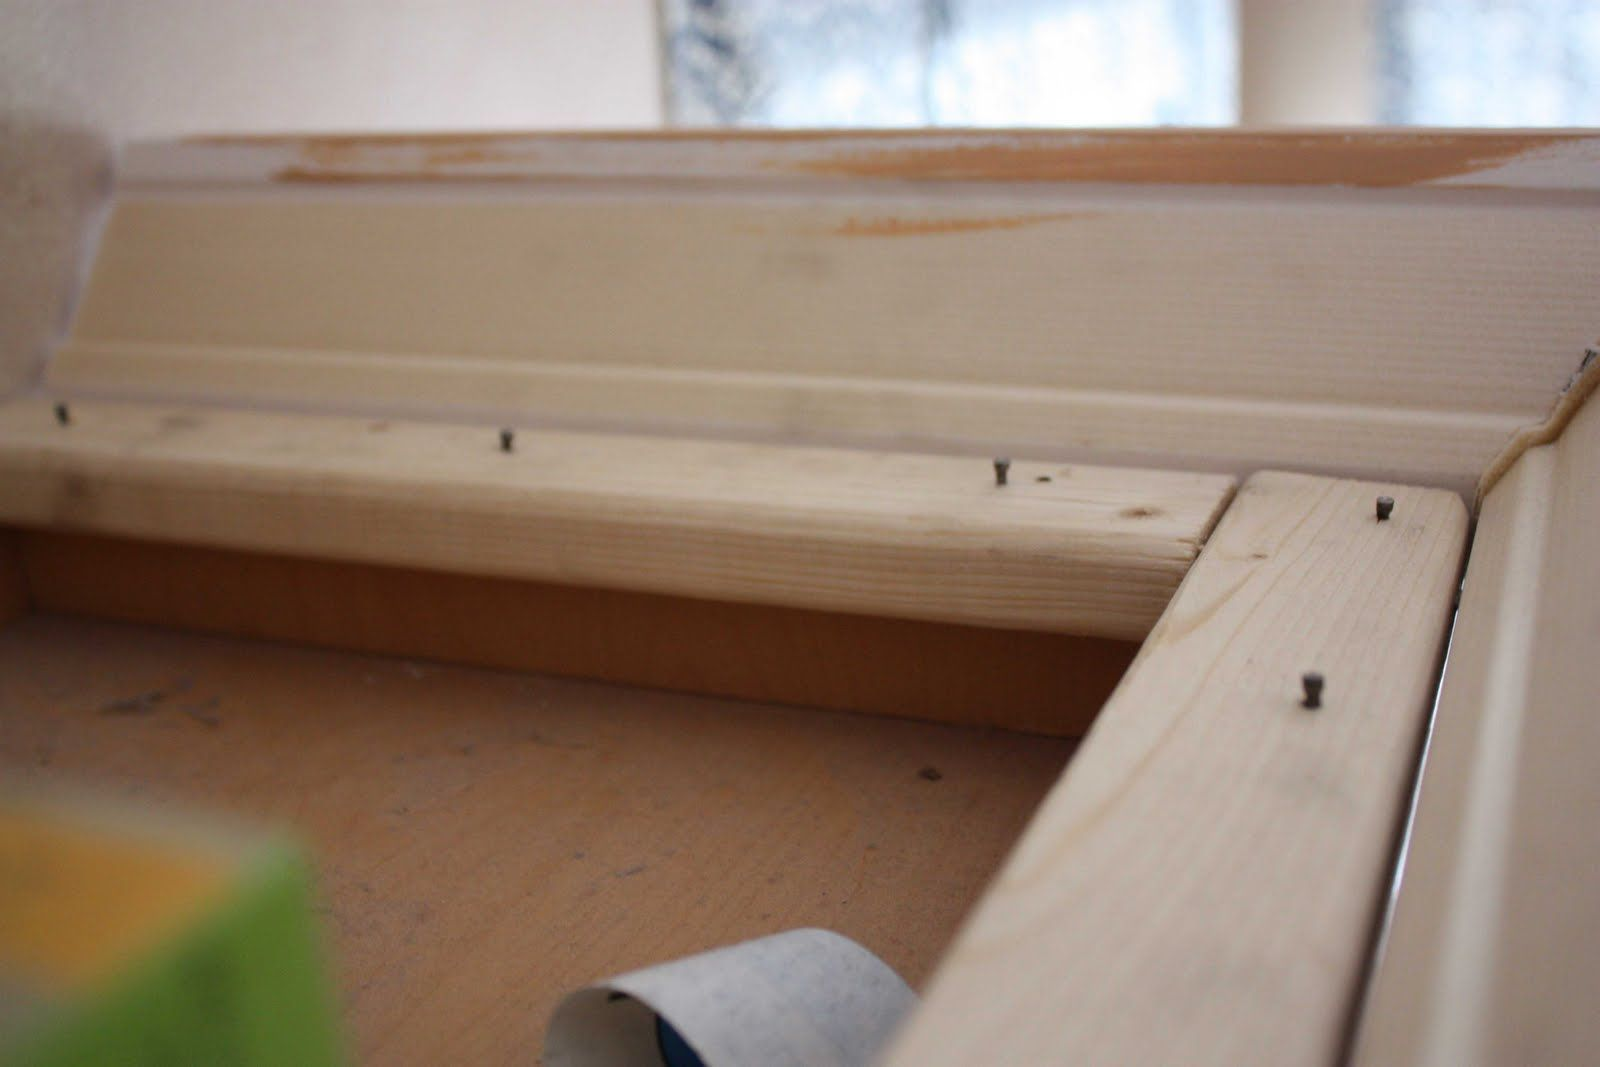 Adding crown molding above cabinet or shelf | DIY | Pinterest ... on crown molding for modern kitchen cabinets, crown molding for fireplaces ideas, crown molding for living room ideas,